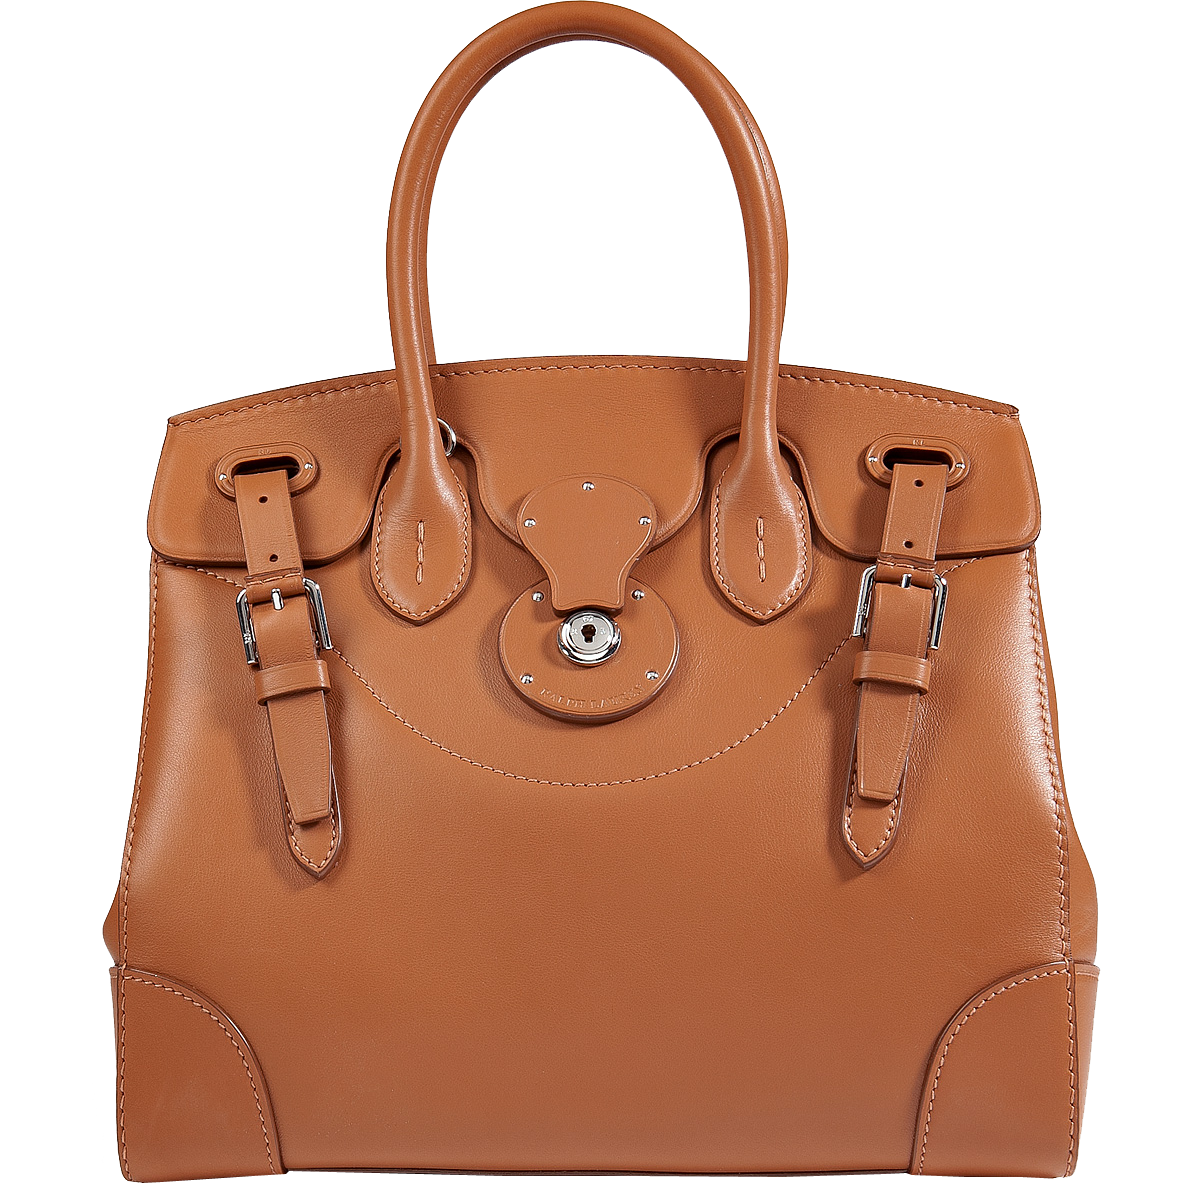 Ralph Lauren Collection Leather Soft Ricky Tote in Gold